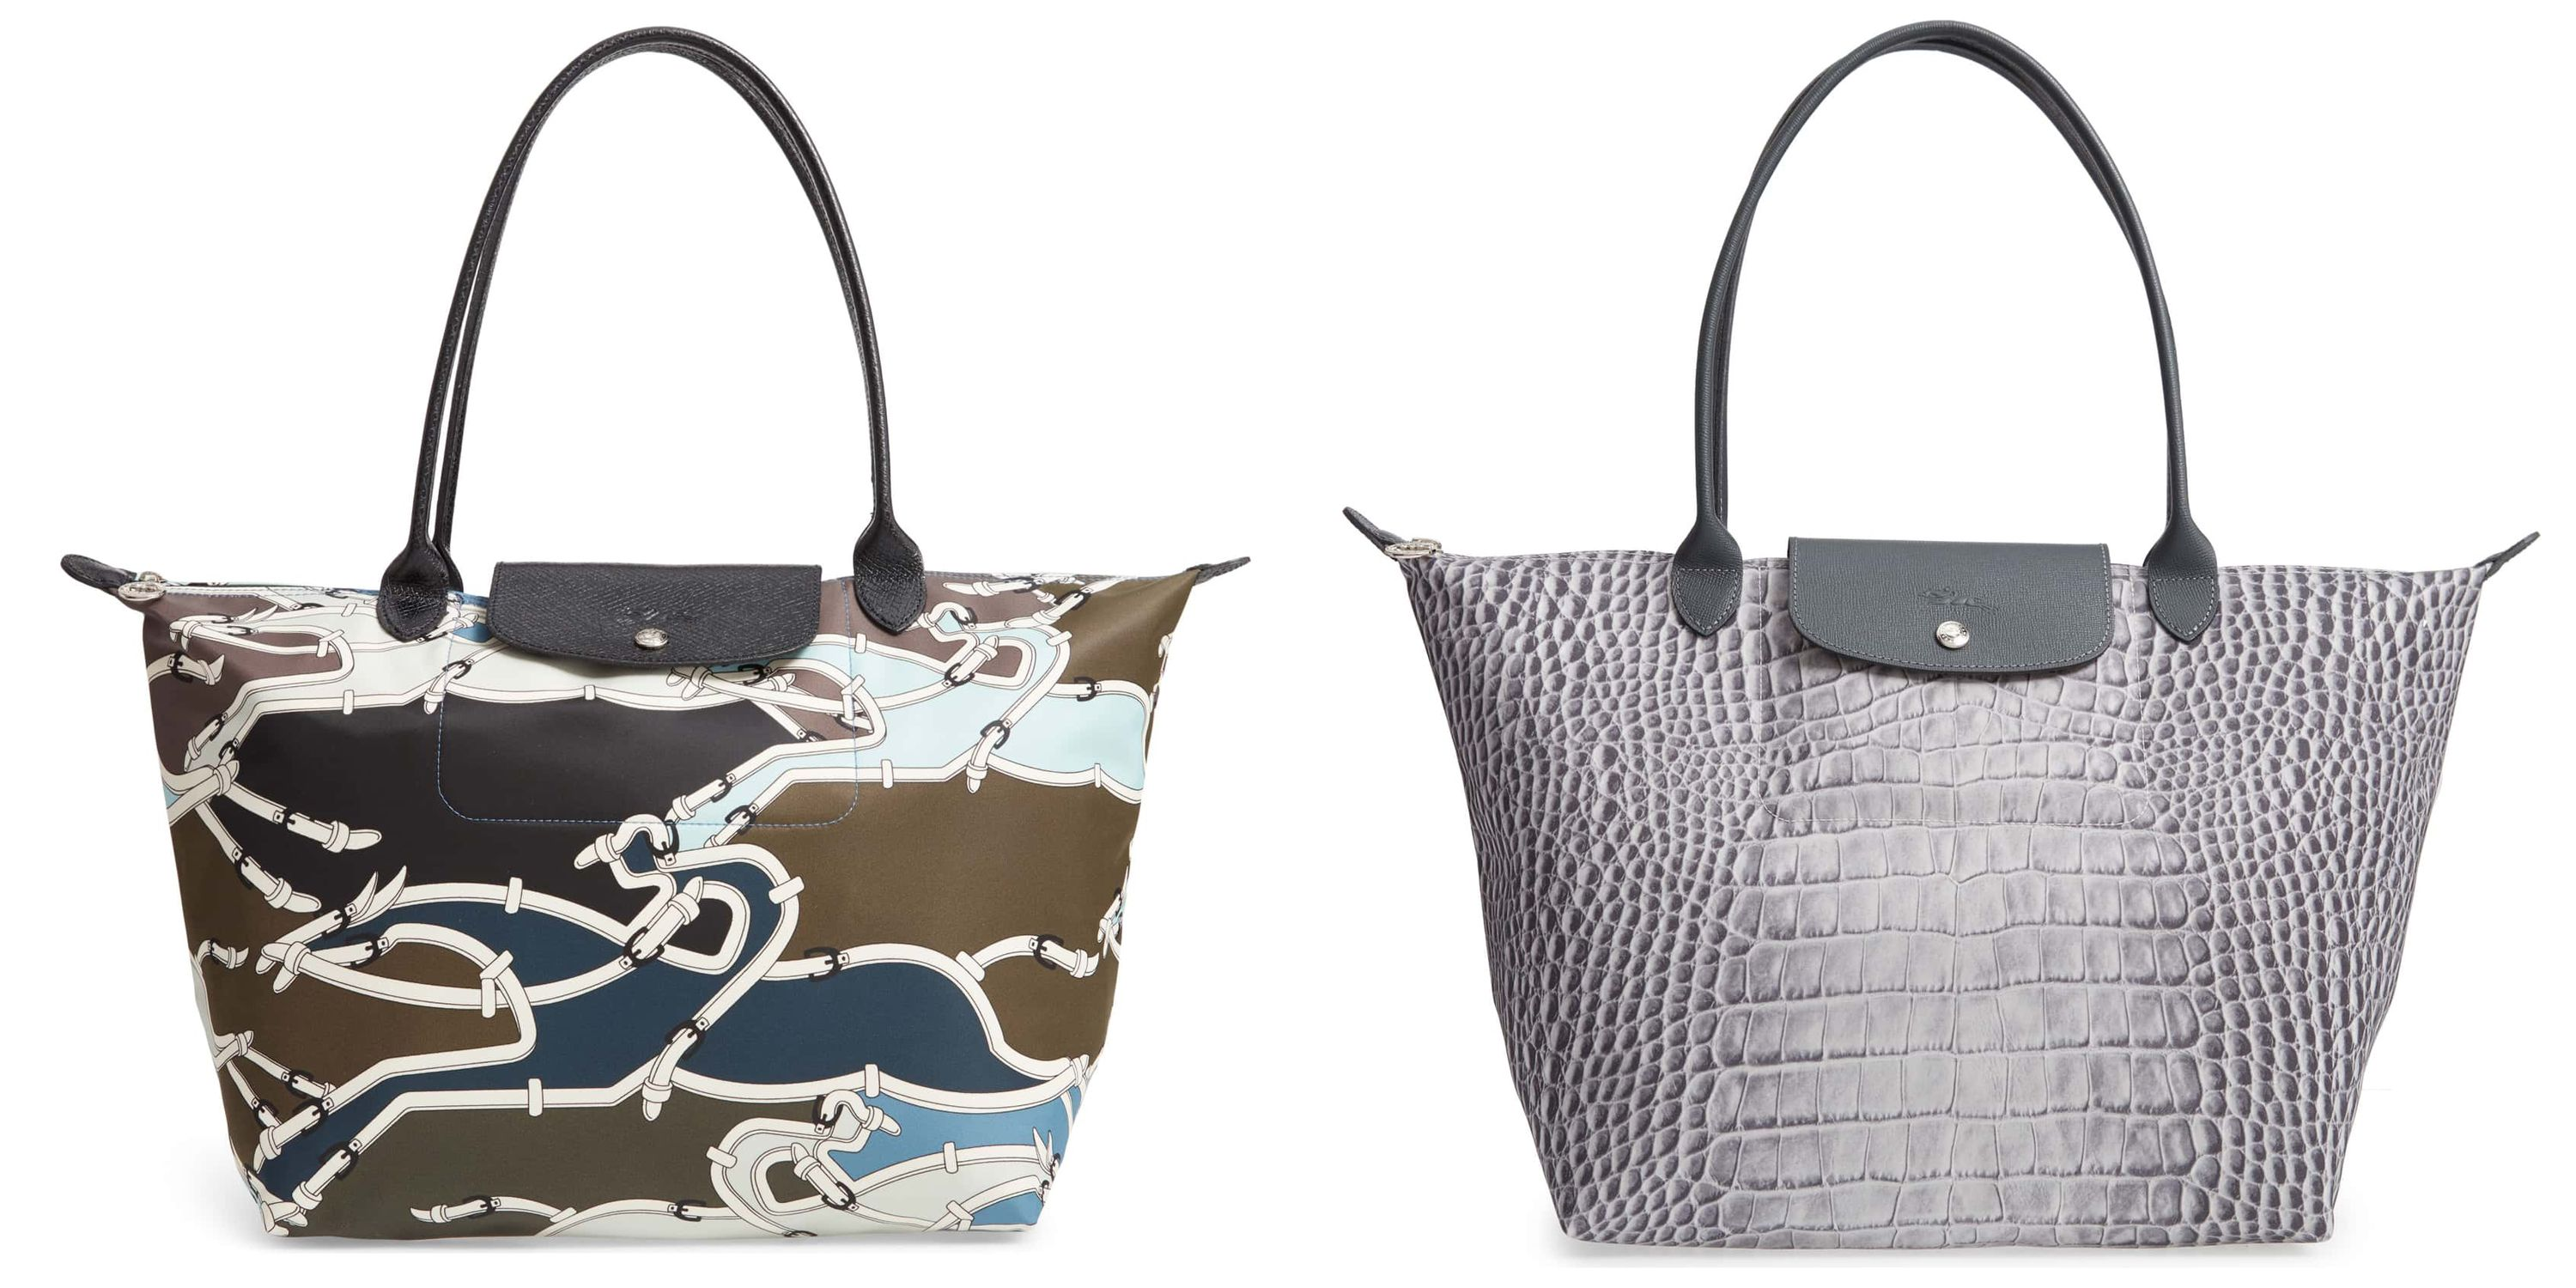 sports shoes cozy fresh newest Longchamp Totes Are On Sale Just In Time For Holiday Gift-Giving